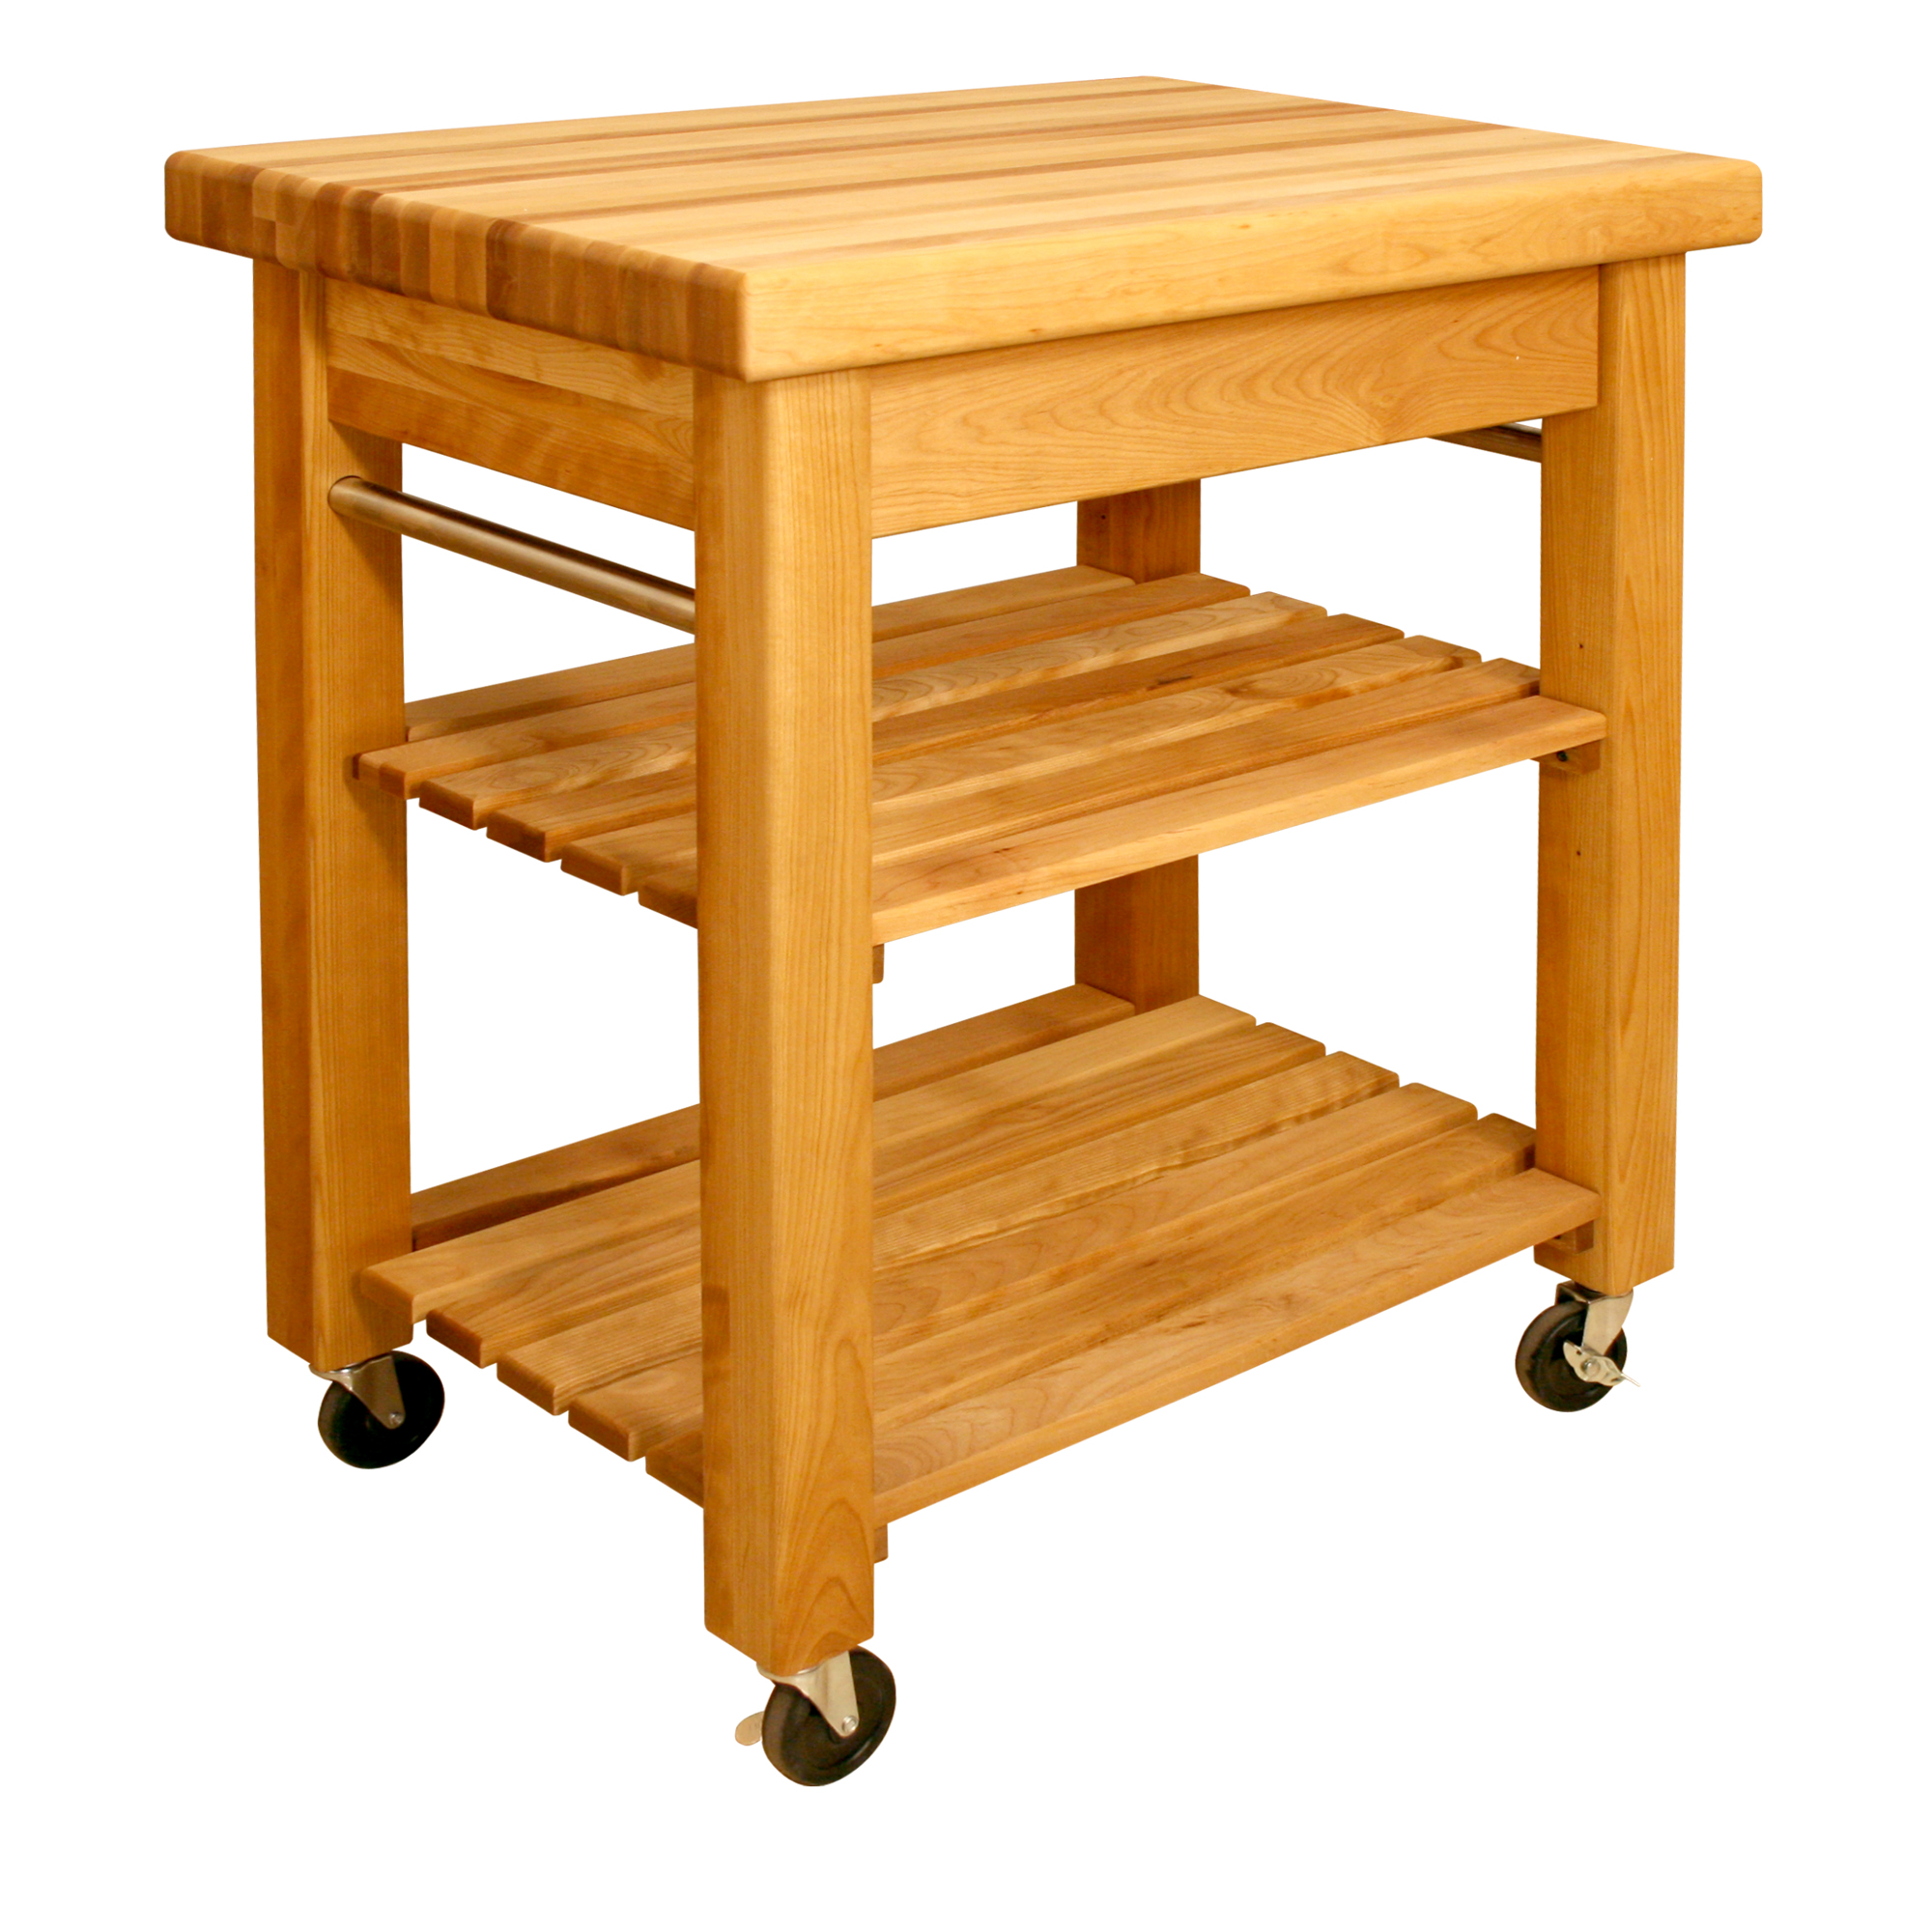 Most Popular Kitchen Islands and Carts